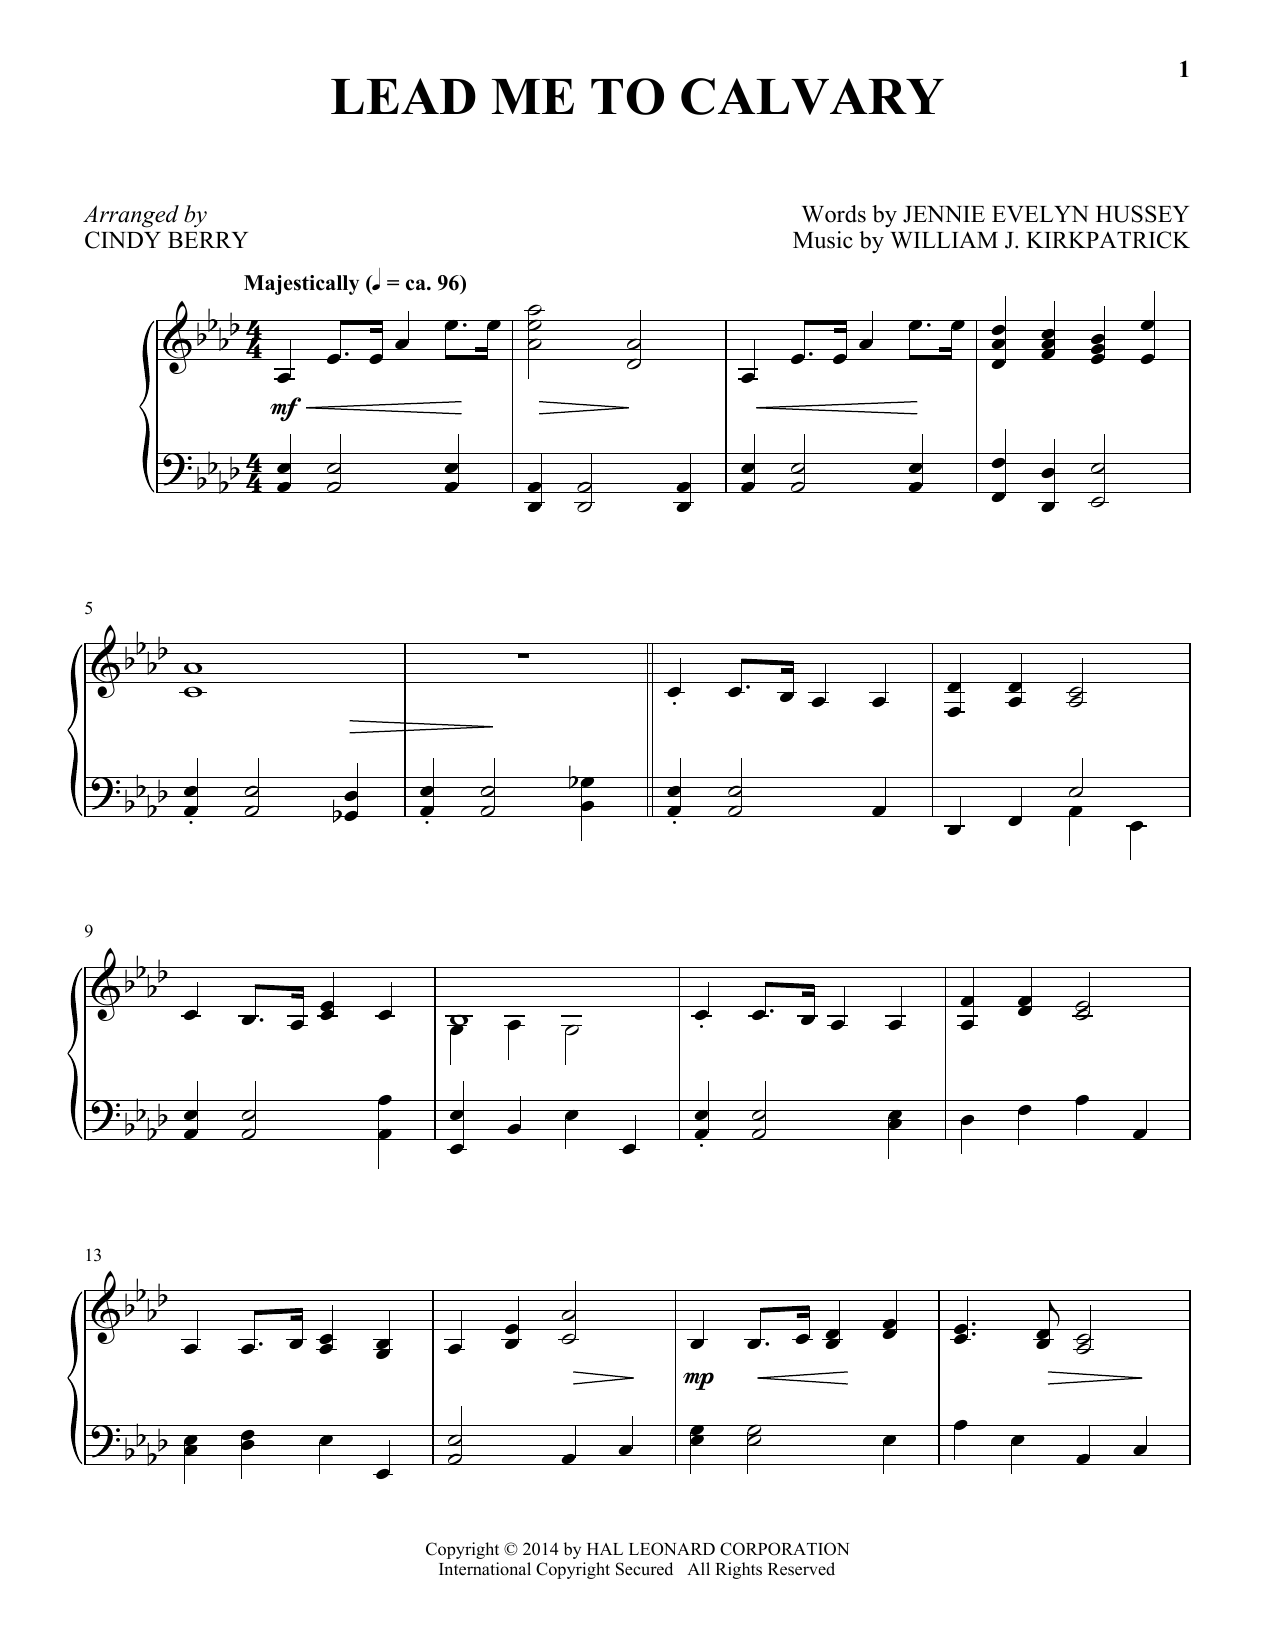 Cindy Berry Lead Me To Calvary sheet music notes and chords. Download Printable PDF.